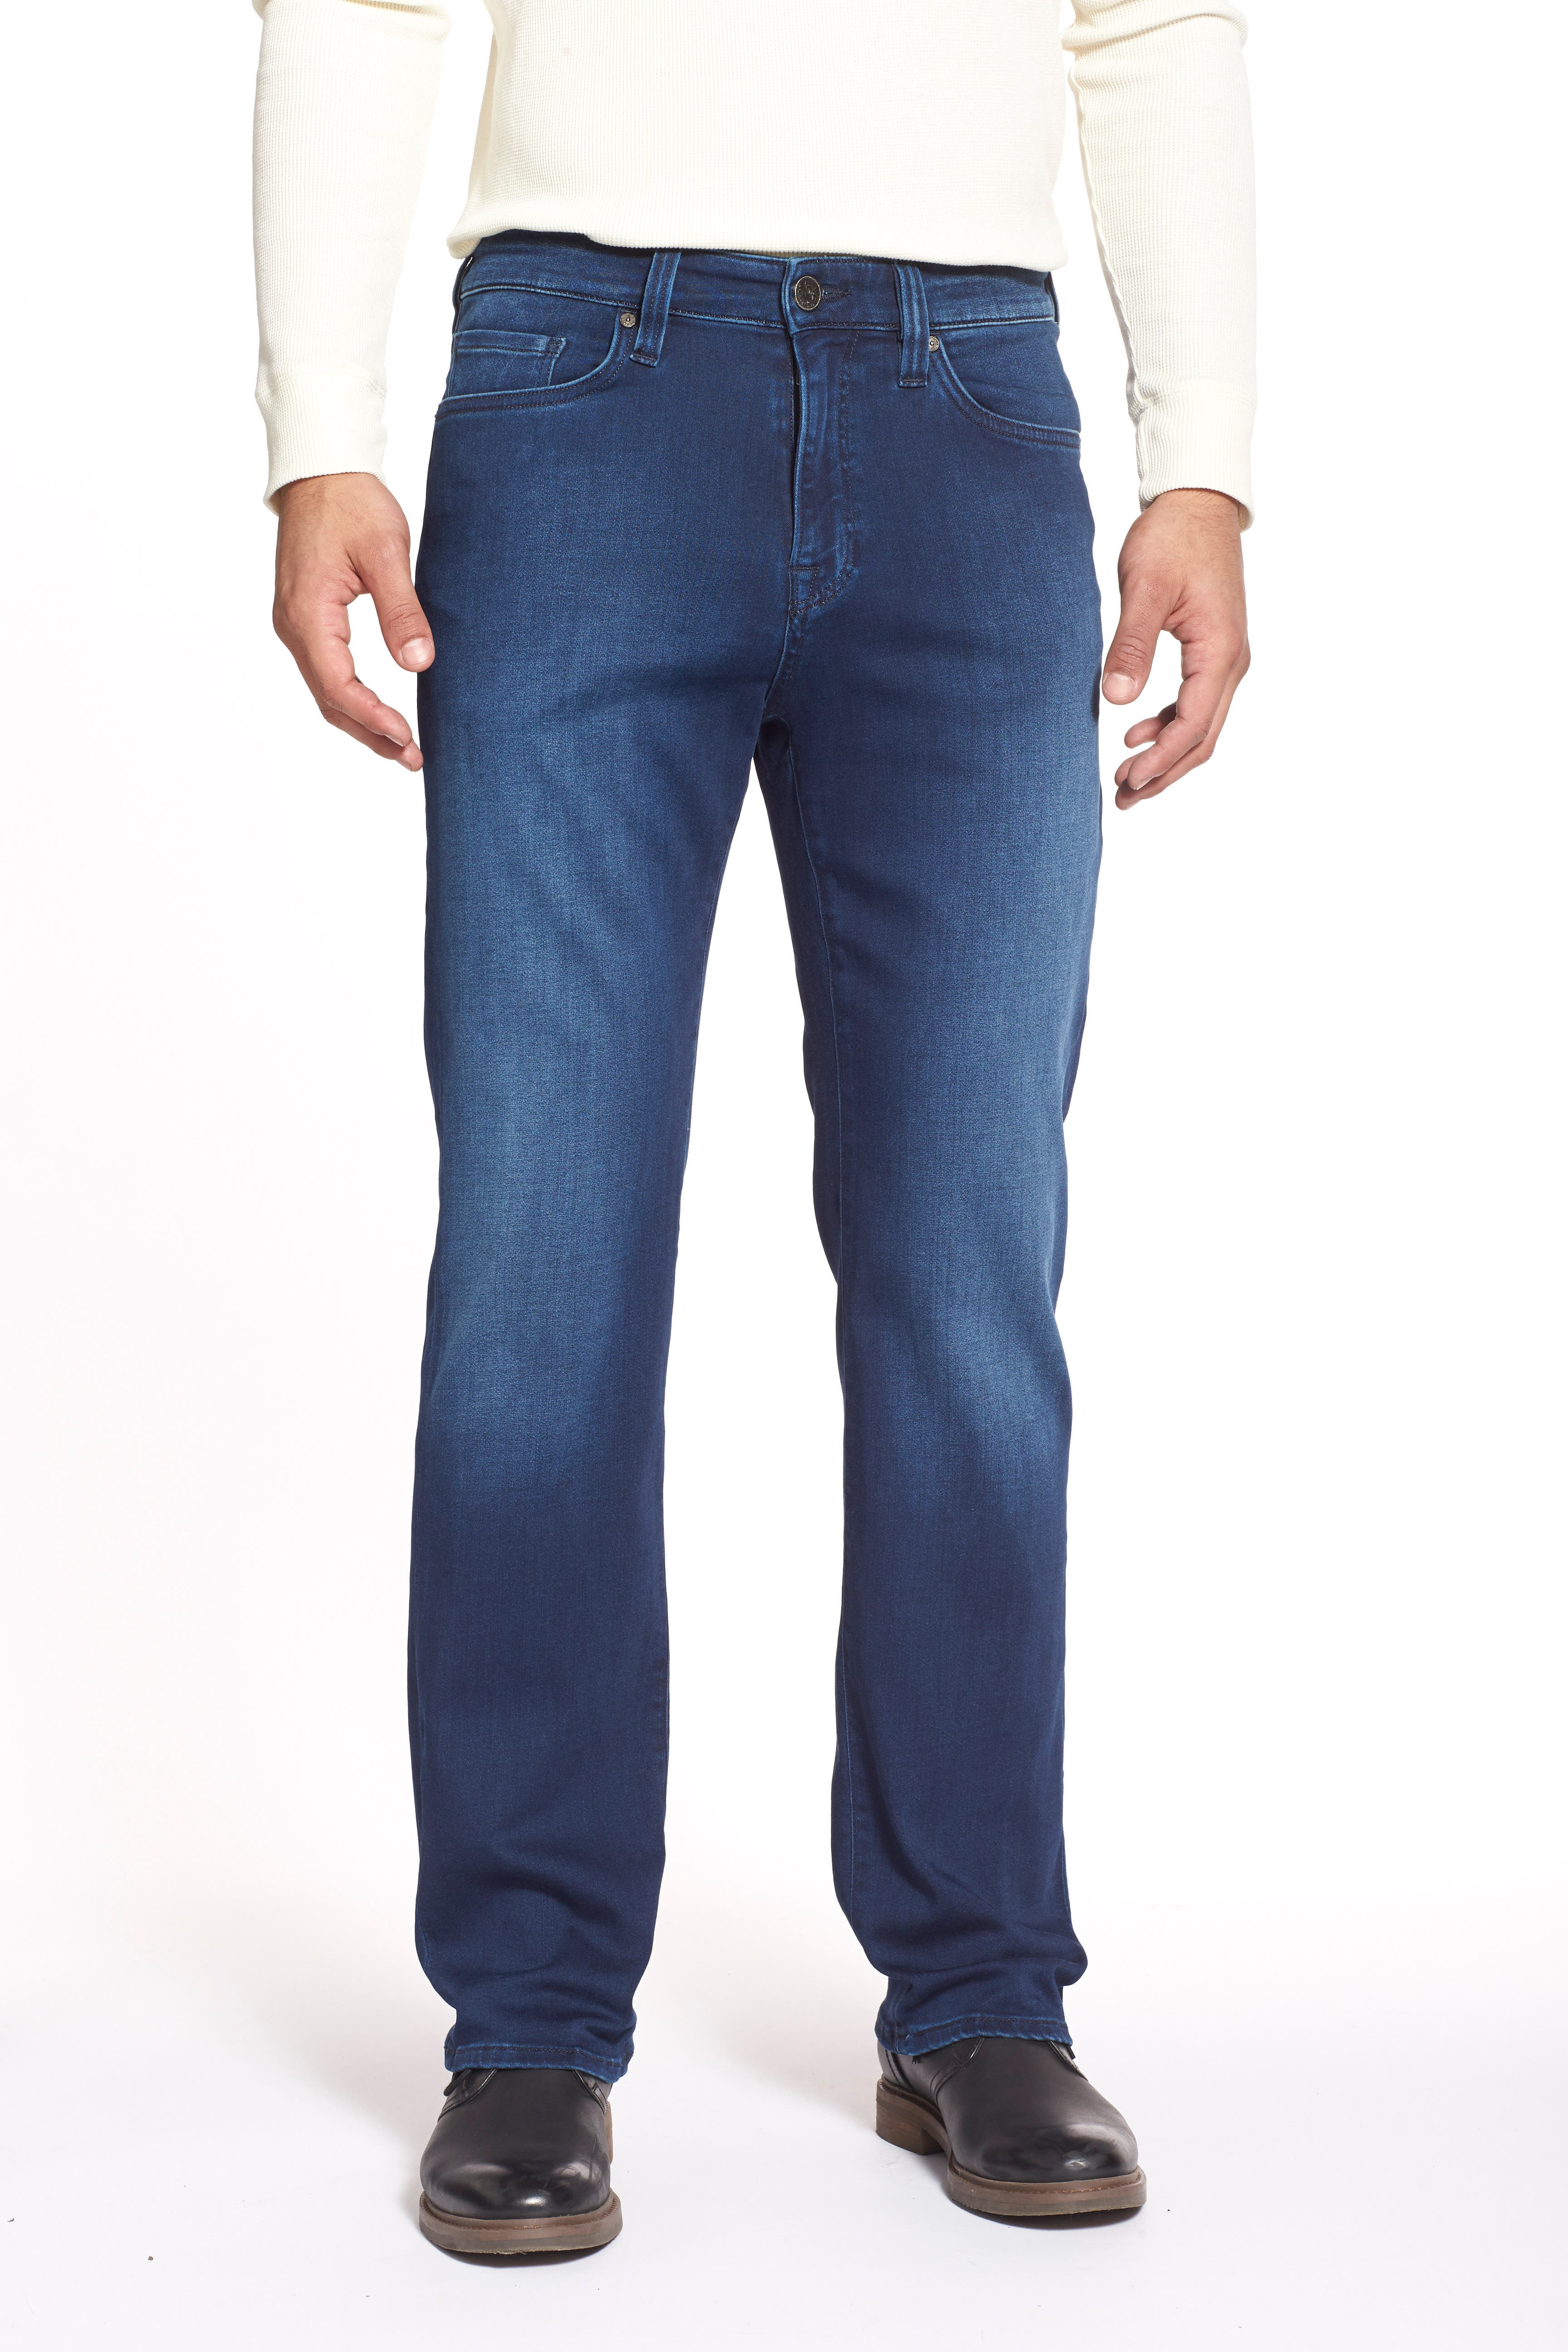 'Charisma' Relaxed Fit Jeans,                             Alternate thumbnail 5, color,                             401